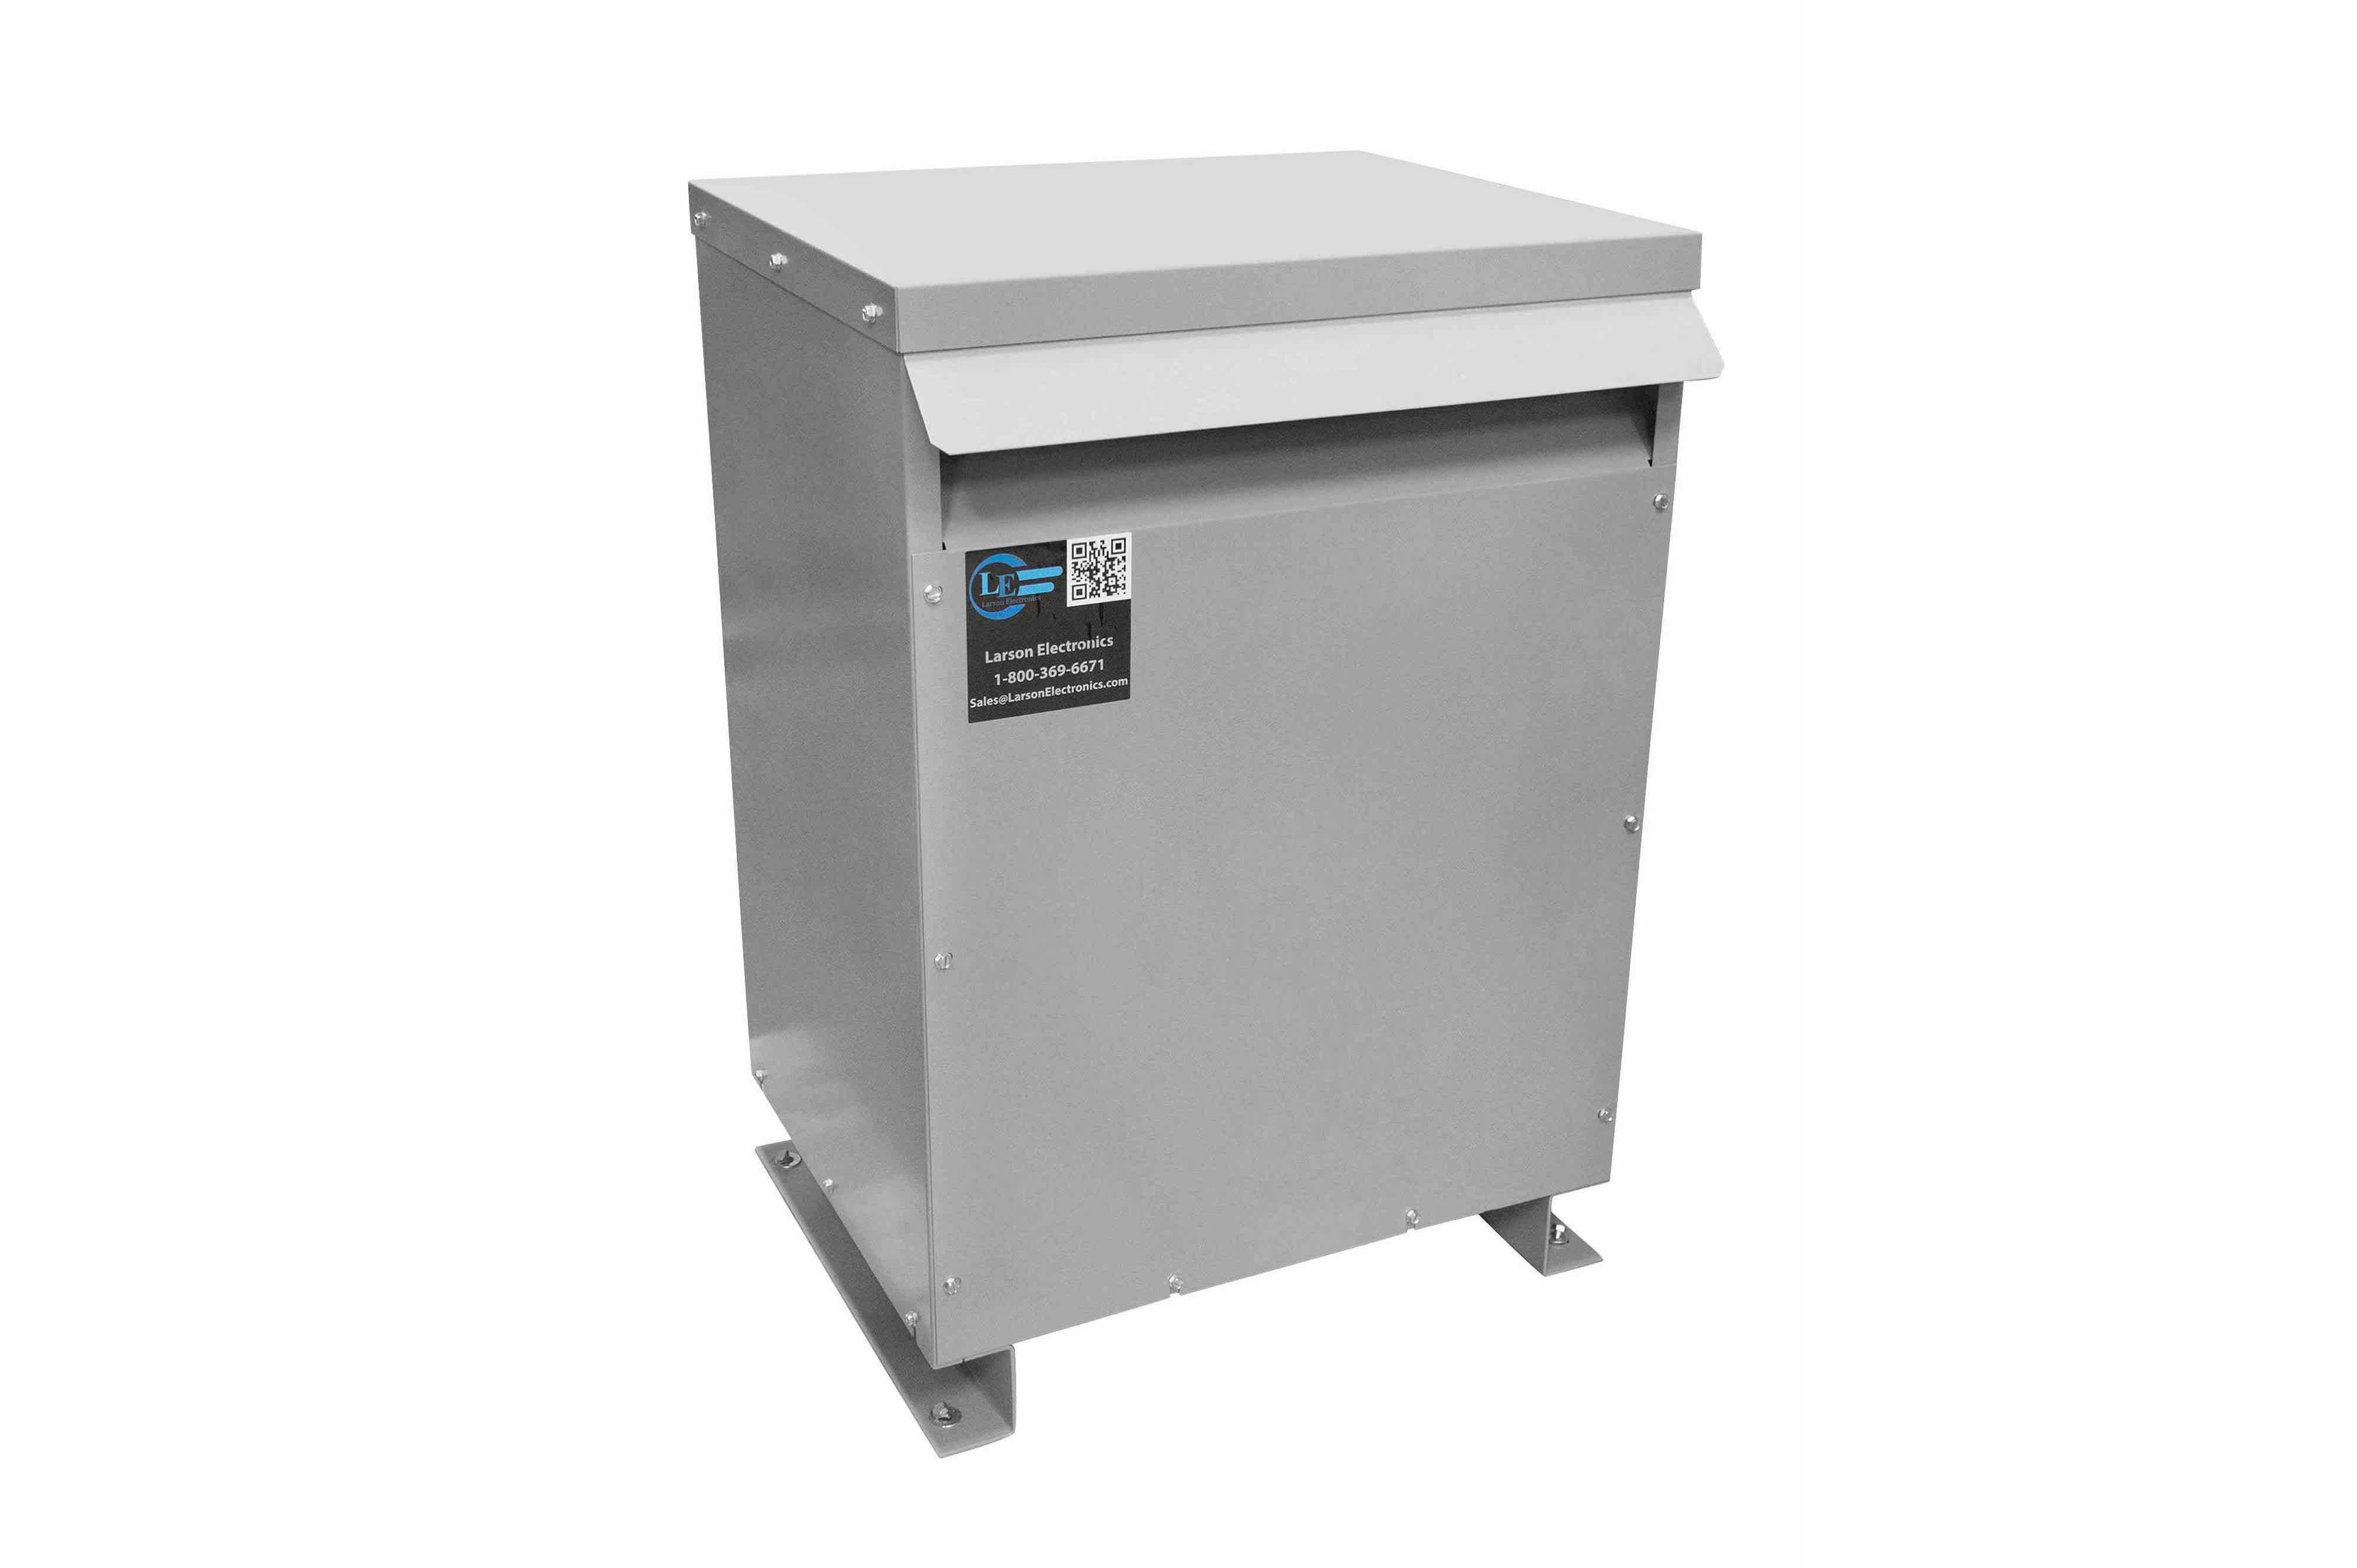 22.5 kVA 3PH Isolation Transformer, 400V Wye Primary, 600Y/347 Wye-N Secondary, N3R, Ventilated, 60 Hz